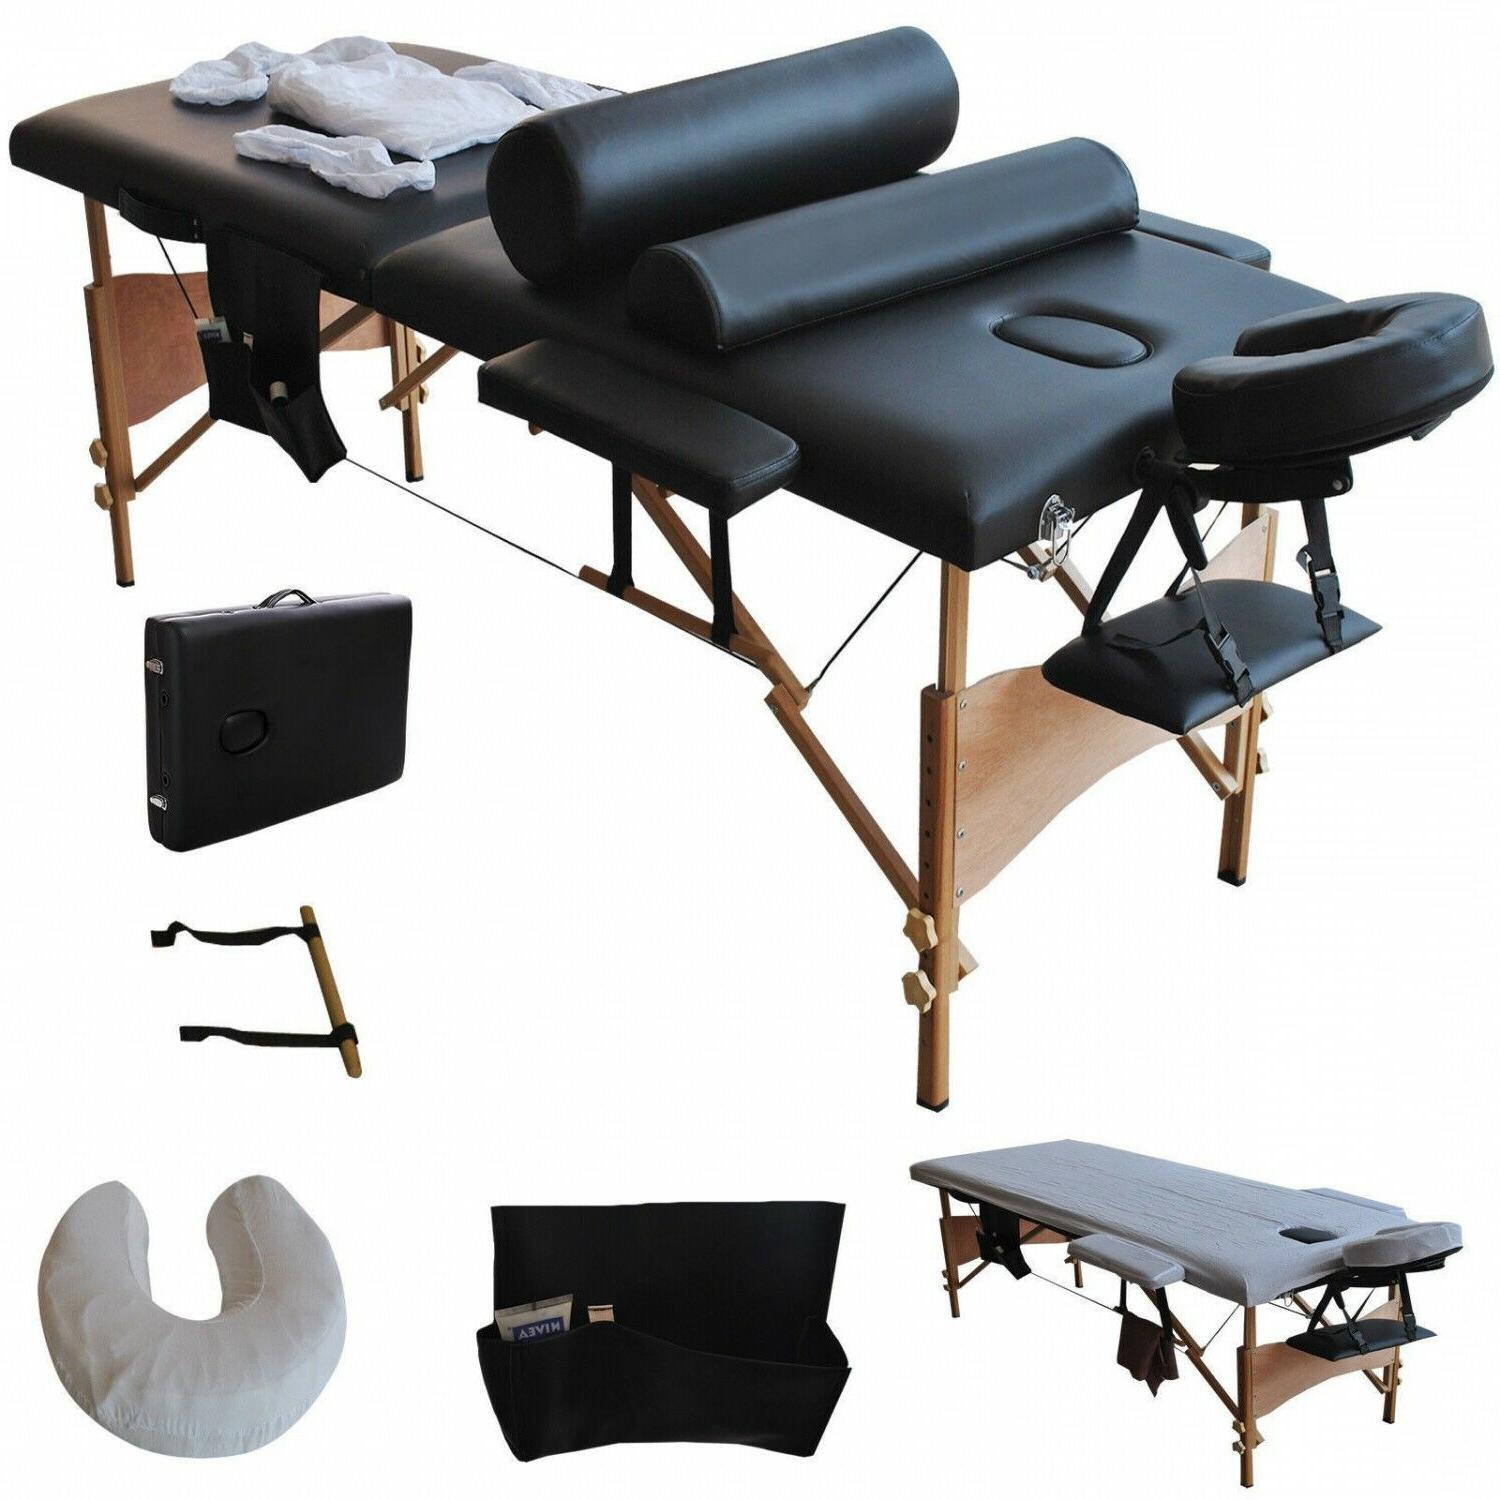 massage foldable table portable facial spa bed